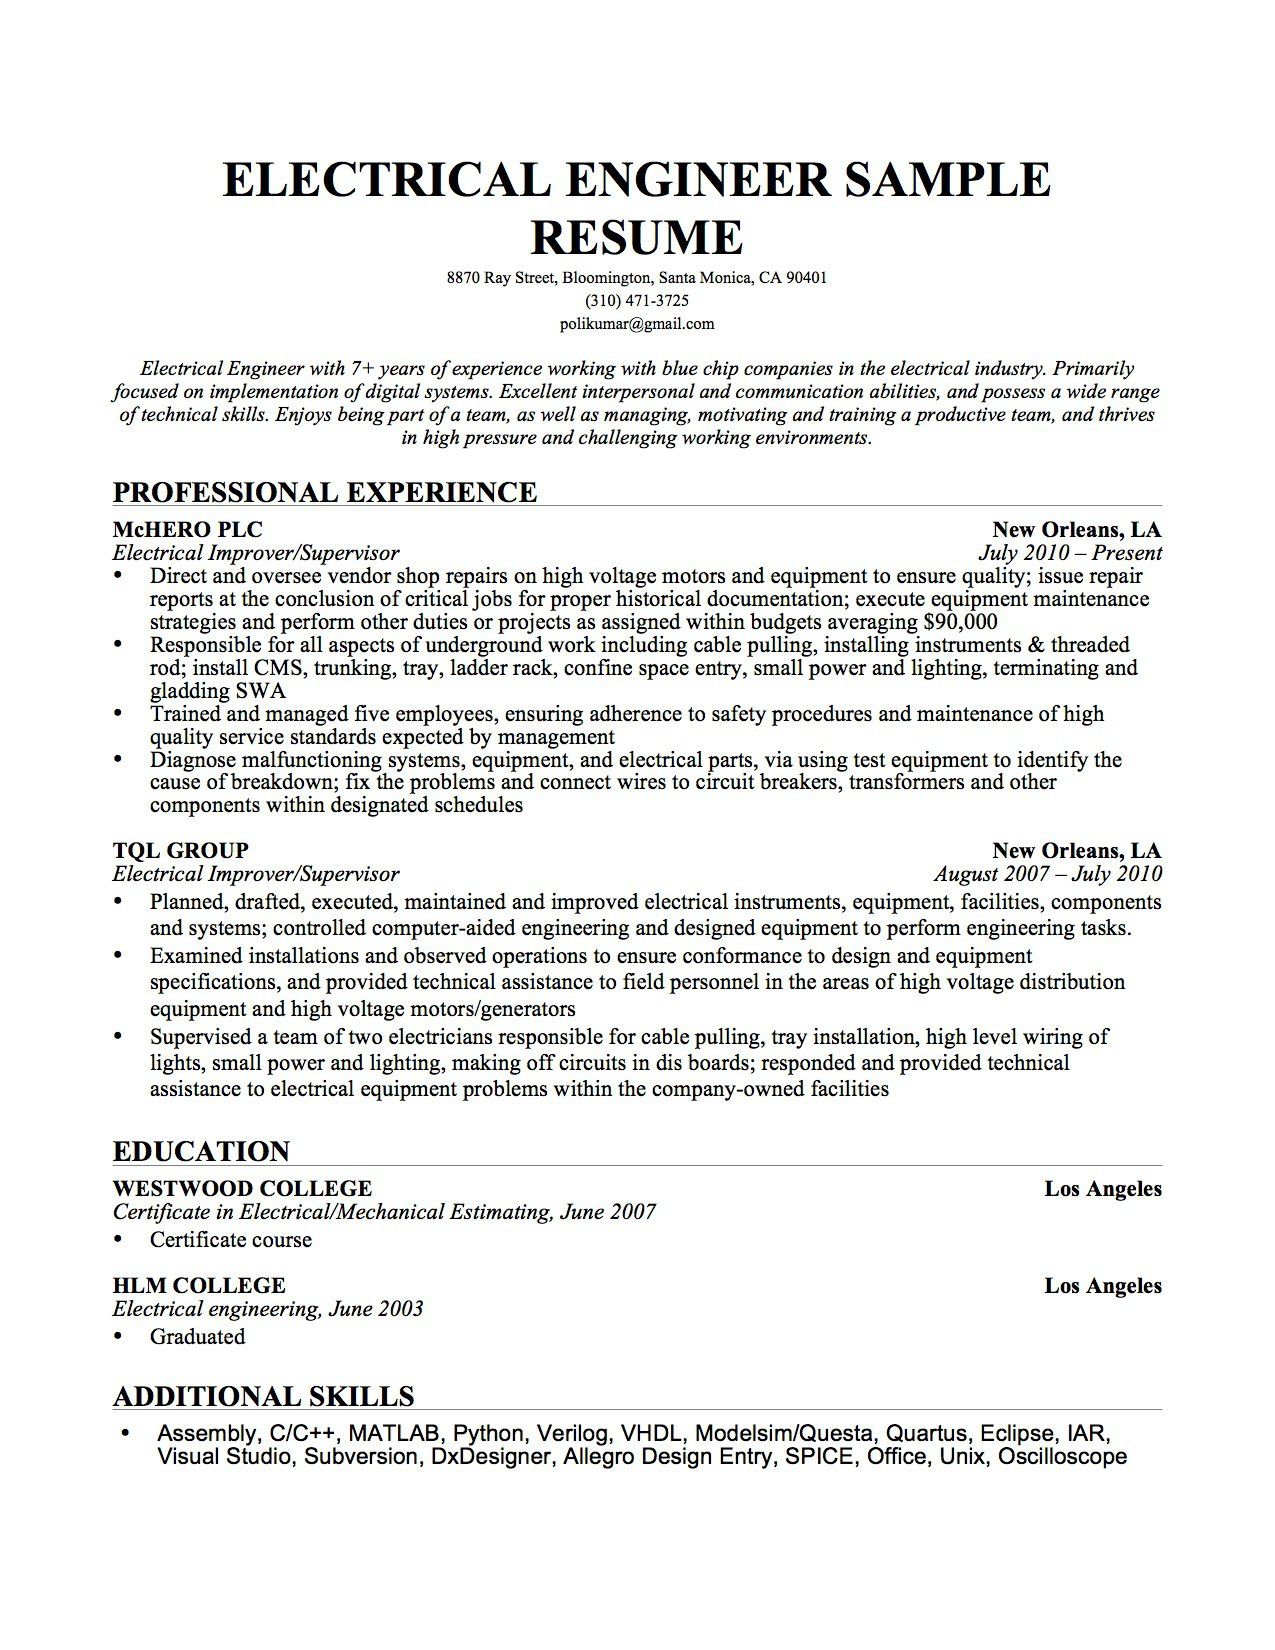 Good Engineer Sample Resume Equipment Fixed Biomedical Technician Cover Letter  Vosvetenet